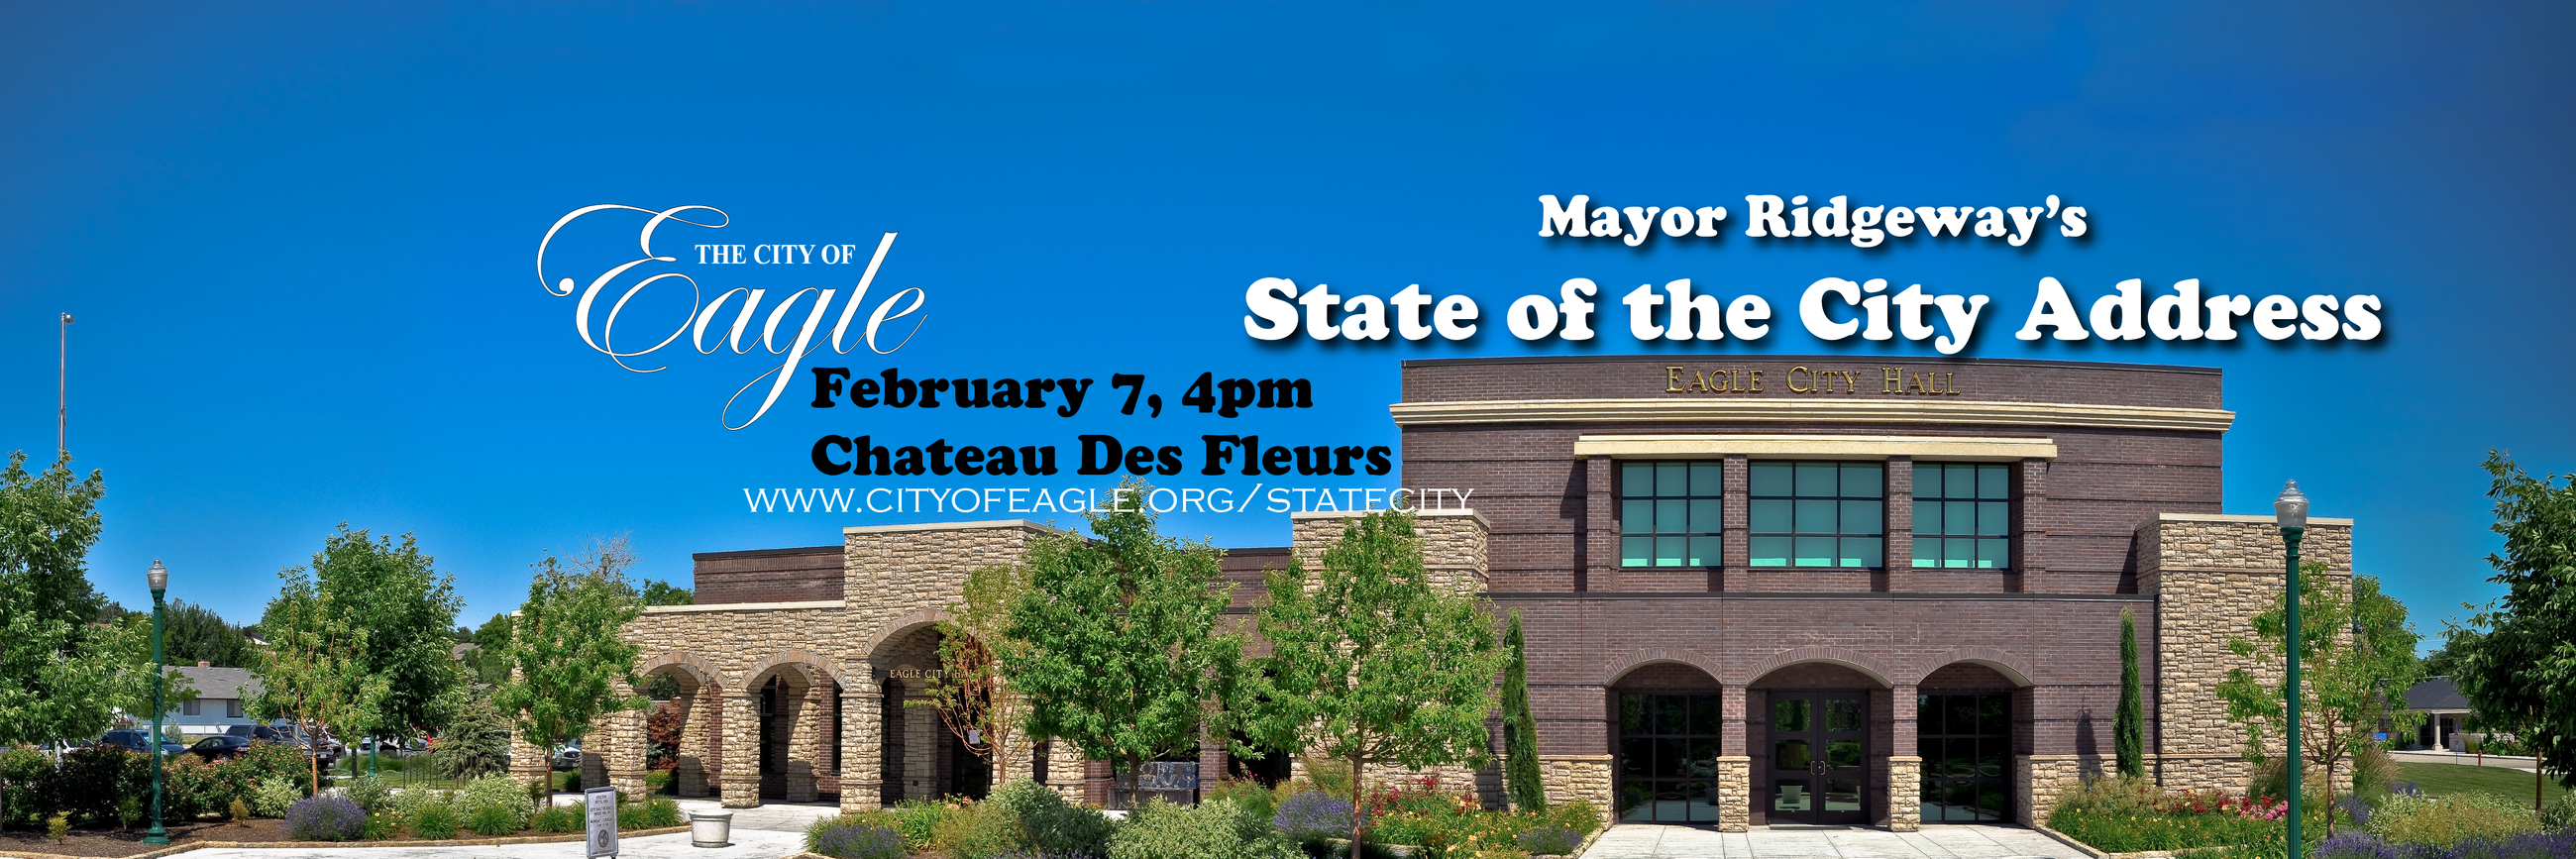 State of the City website banner-01